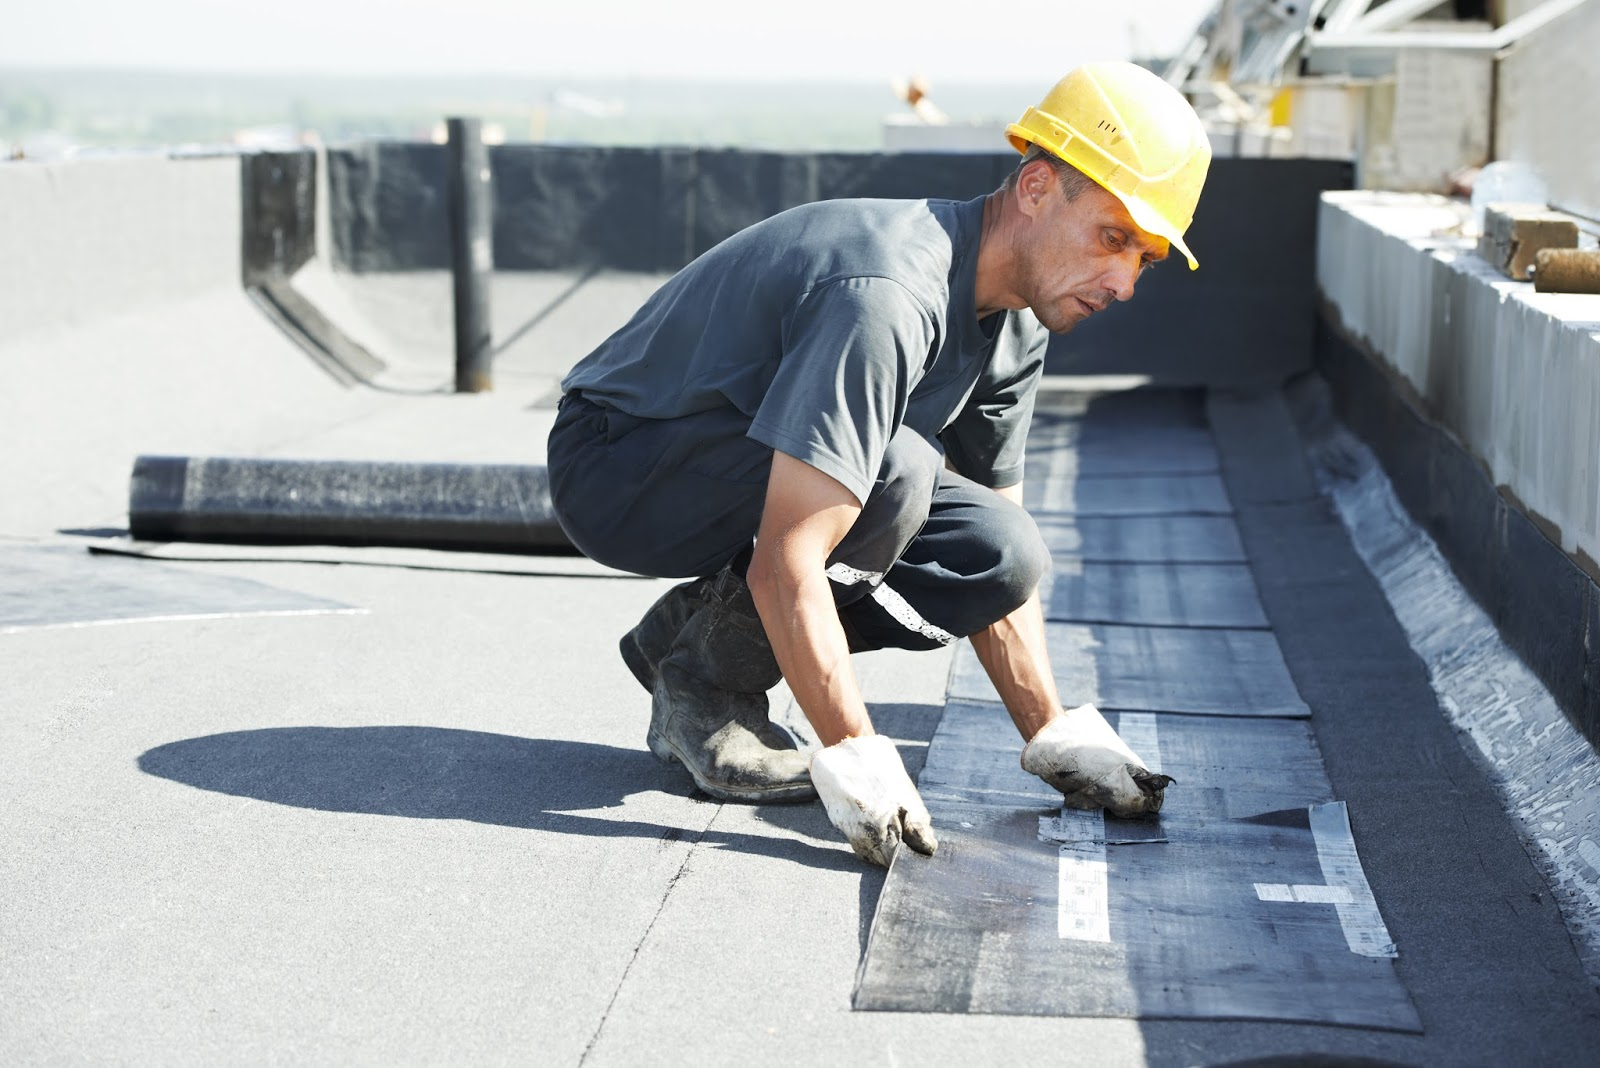 Commercial Roof Repair Inglewood: Appoint experts for commercial ...